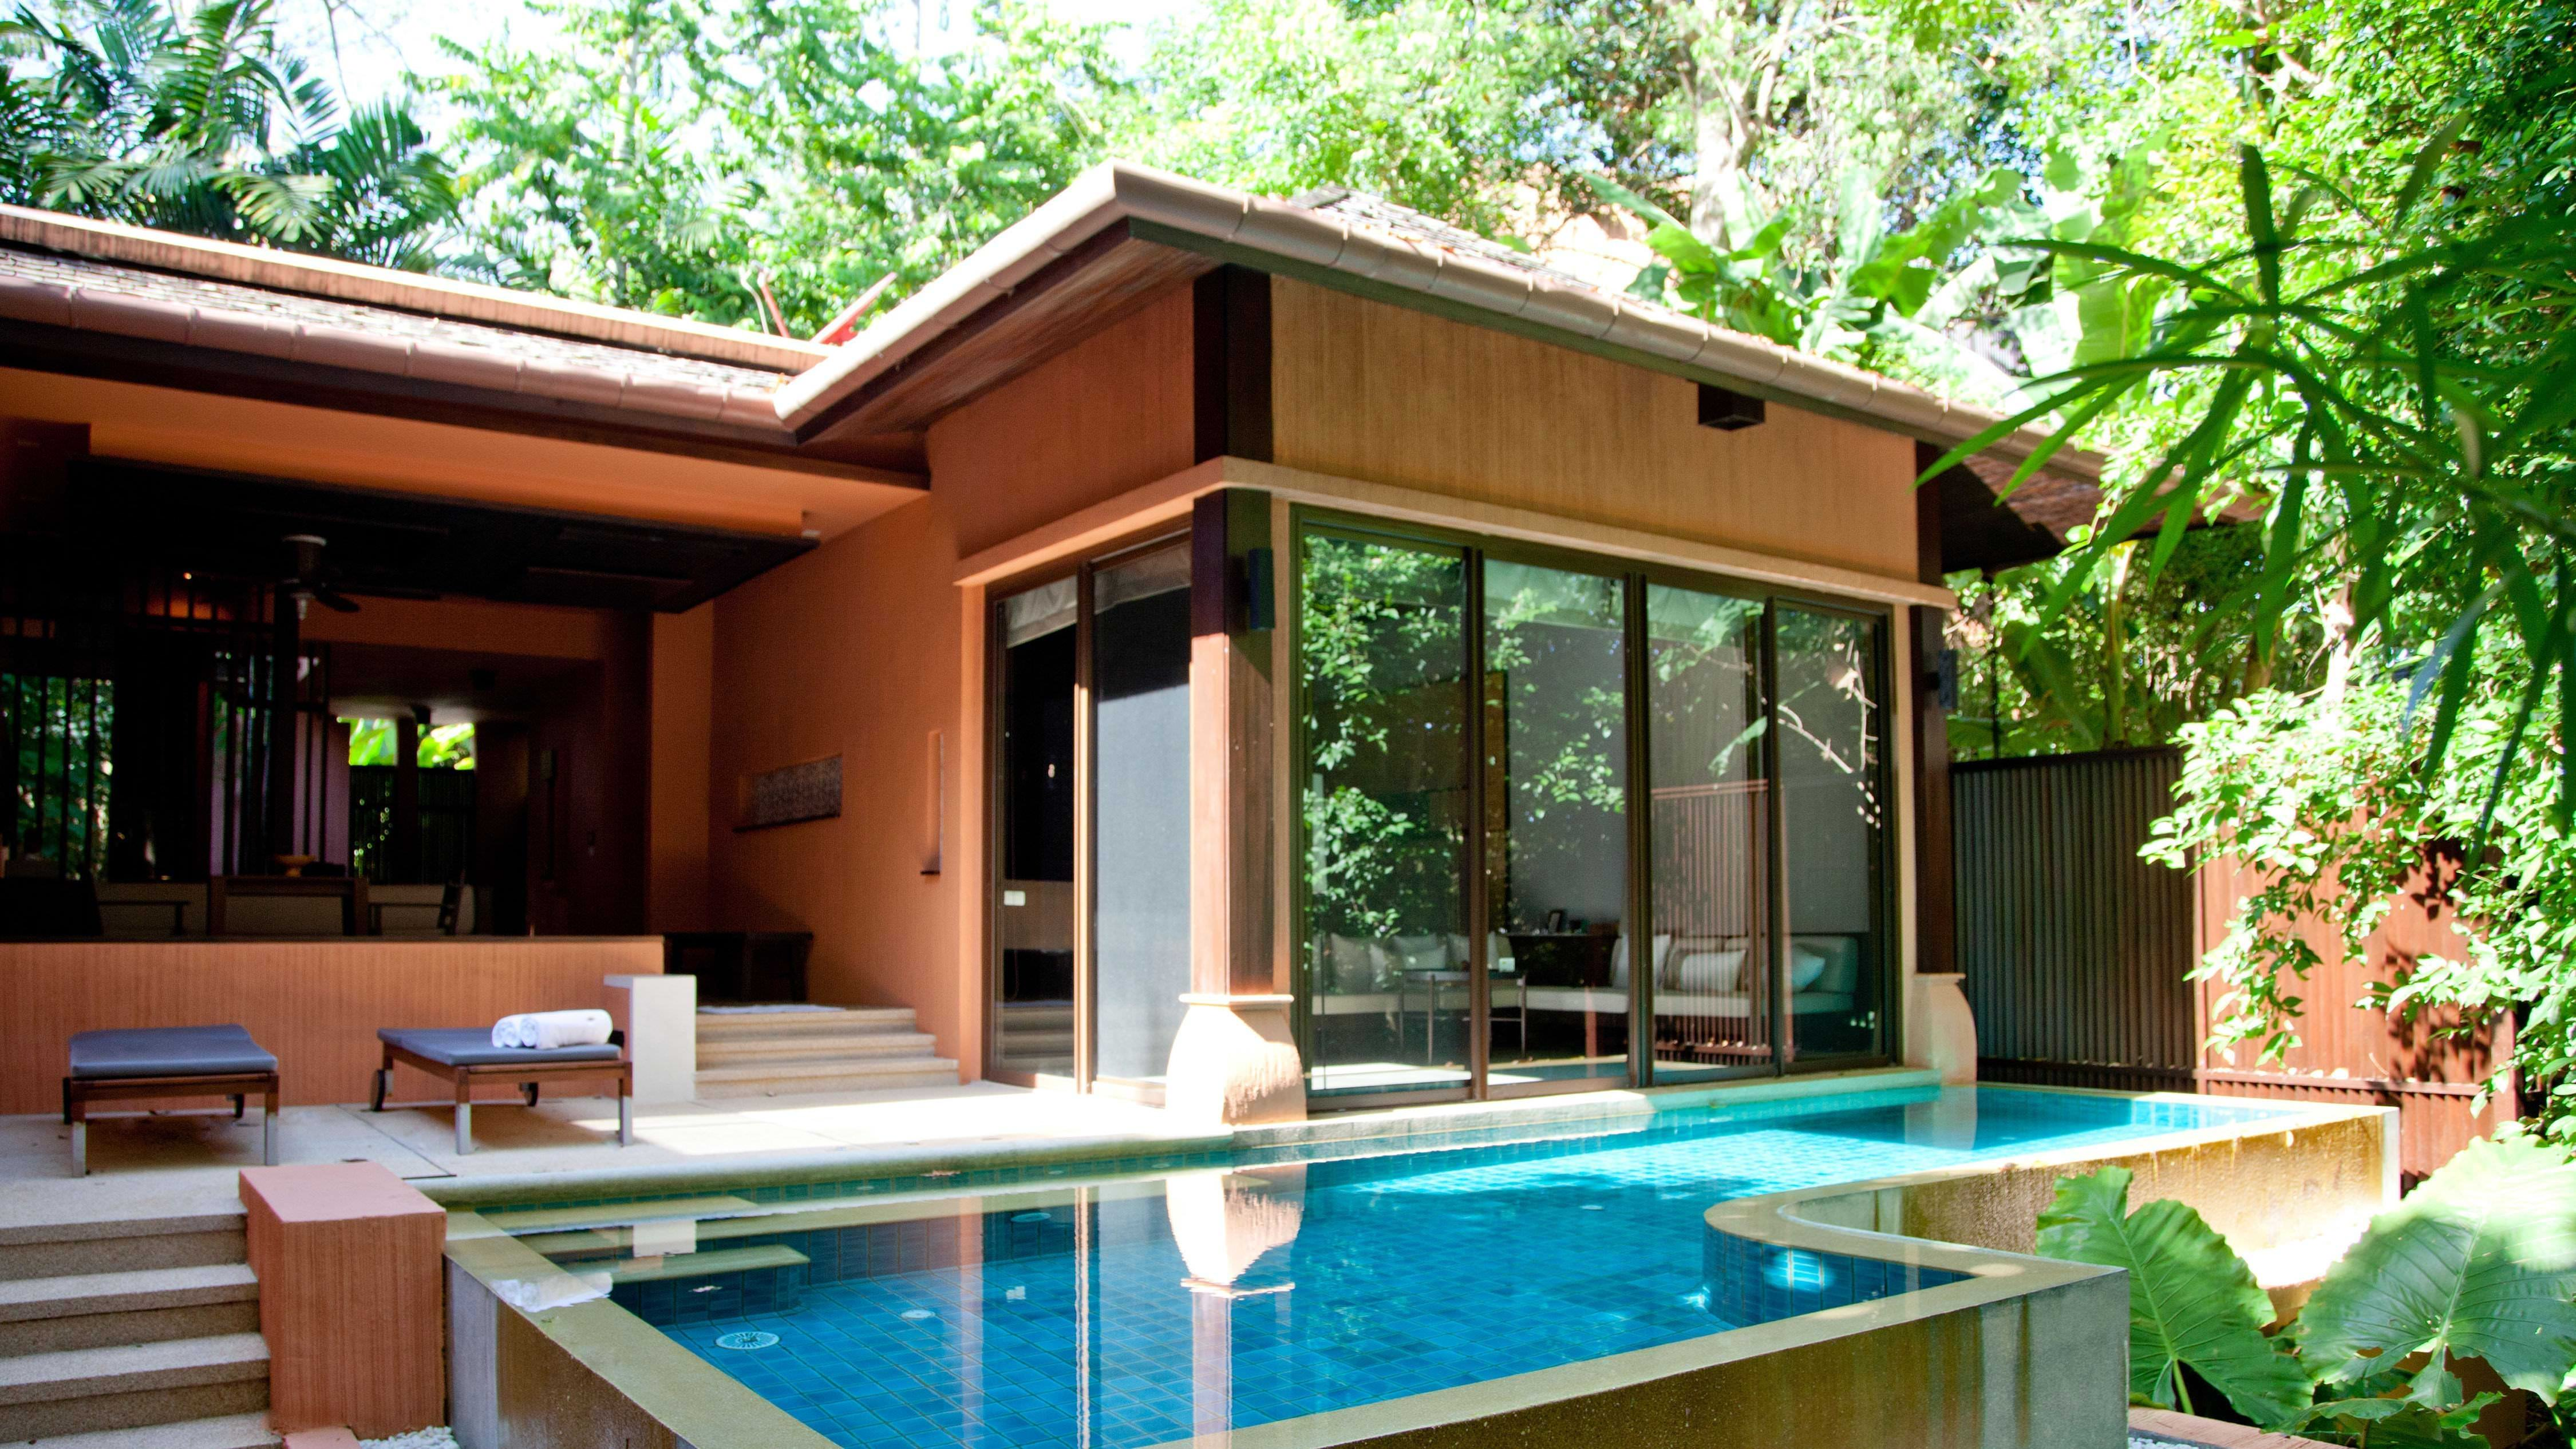 1-One-Bedroom-Family-Suite-Garden-View-Phuket-Pool-Villa-Sri-Panwa-Luxury-Hotel-Resort-Spa